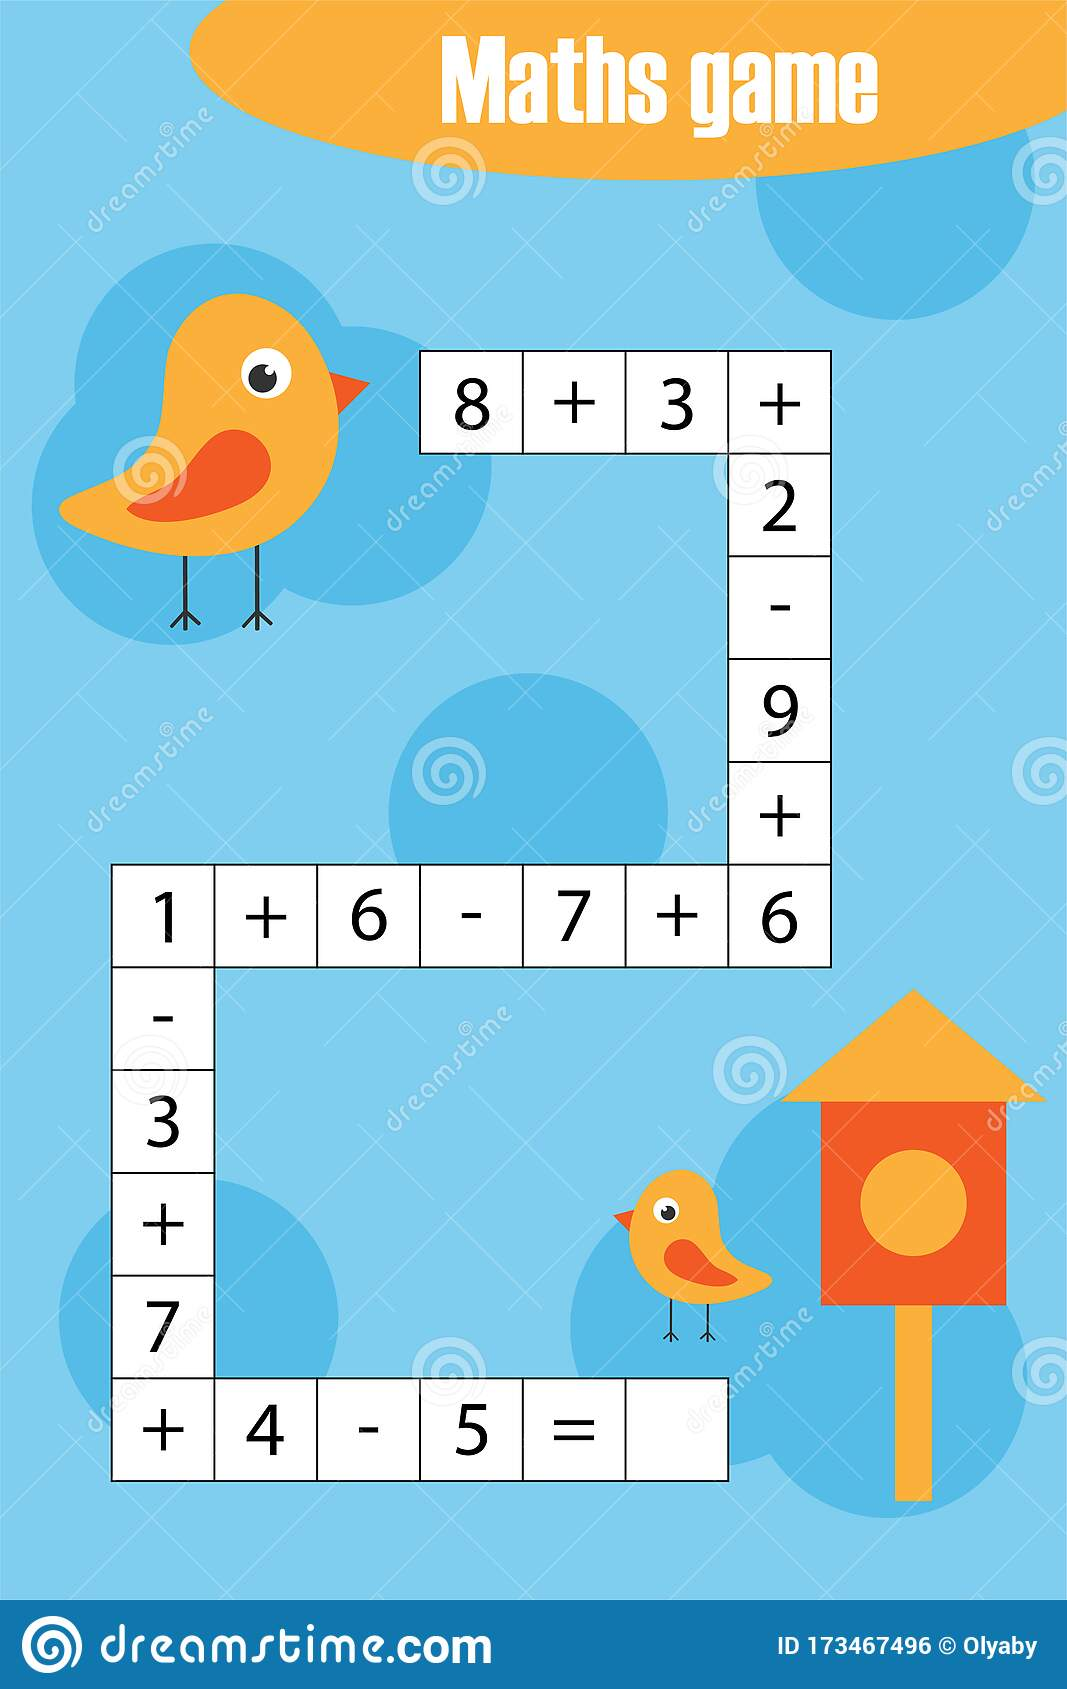 Maths Chain Game With Birds For Children Education Game